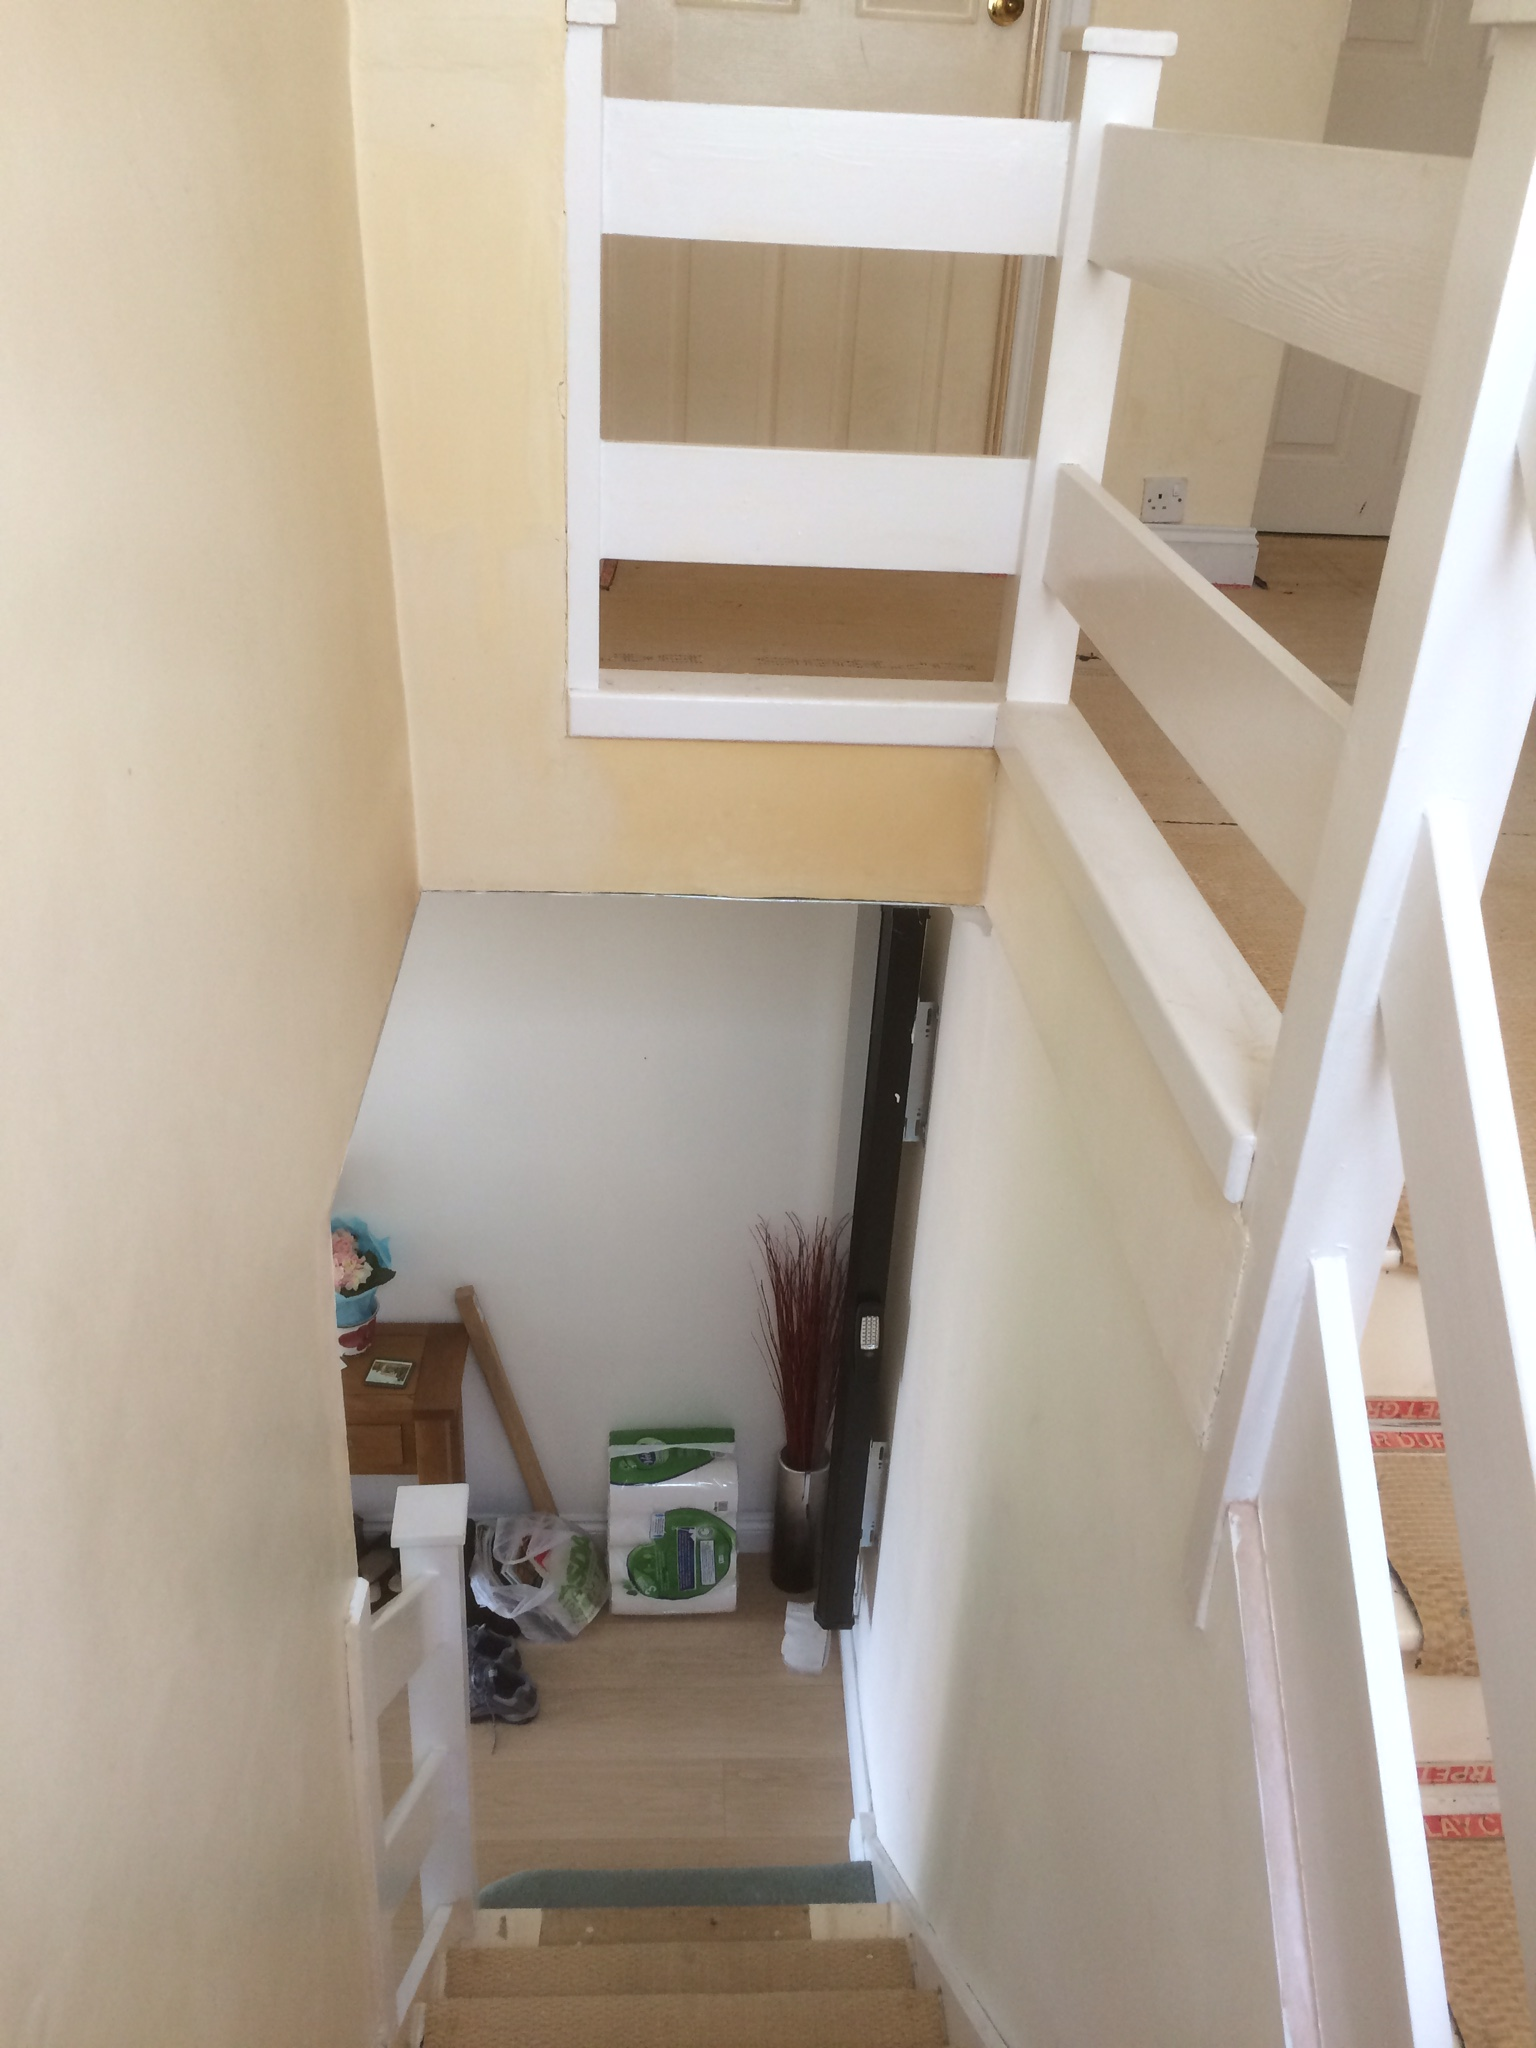 Bay Joinery - Swansea Joinery Service - Stair Refurbishements - White Wooden Stairs 5